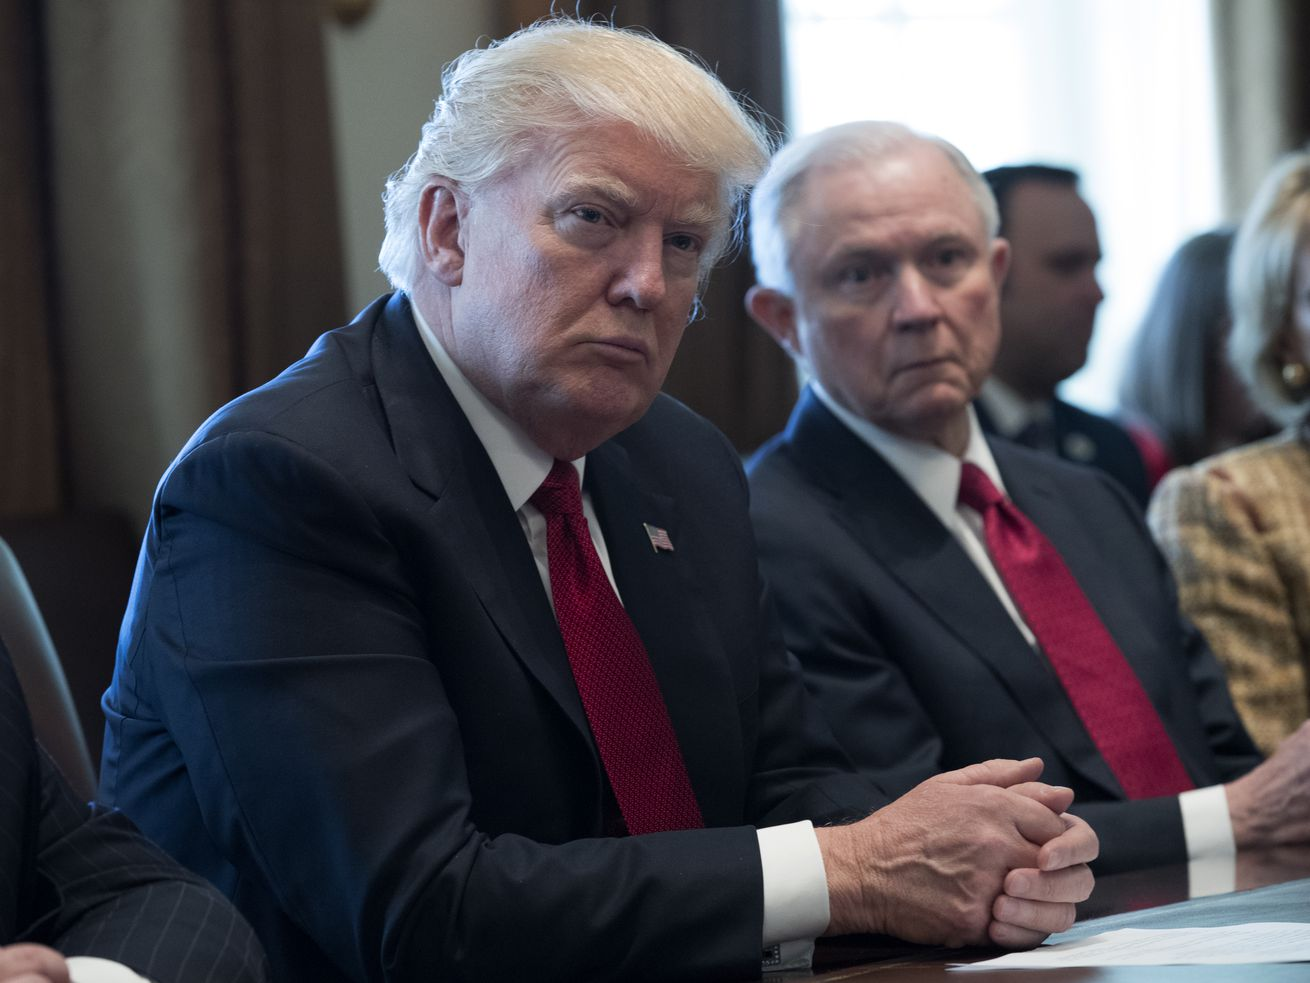 President Donald Trump and Attorney General Jeff Sessions in a panel discussion on opioid and drug abuse in March 2017.